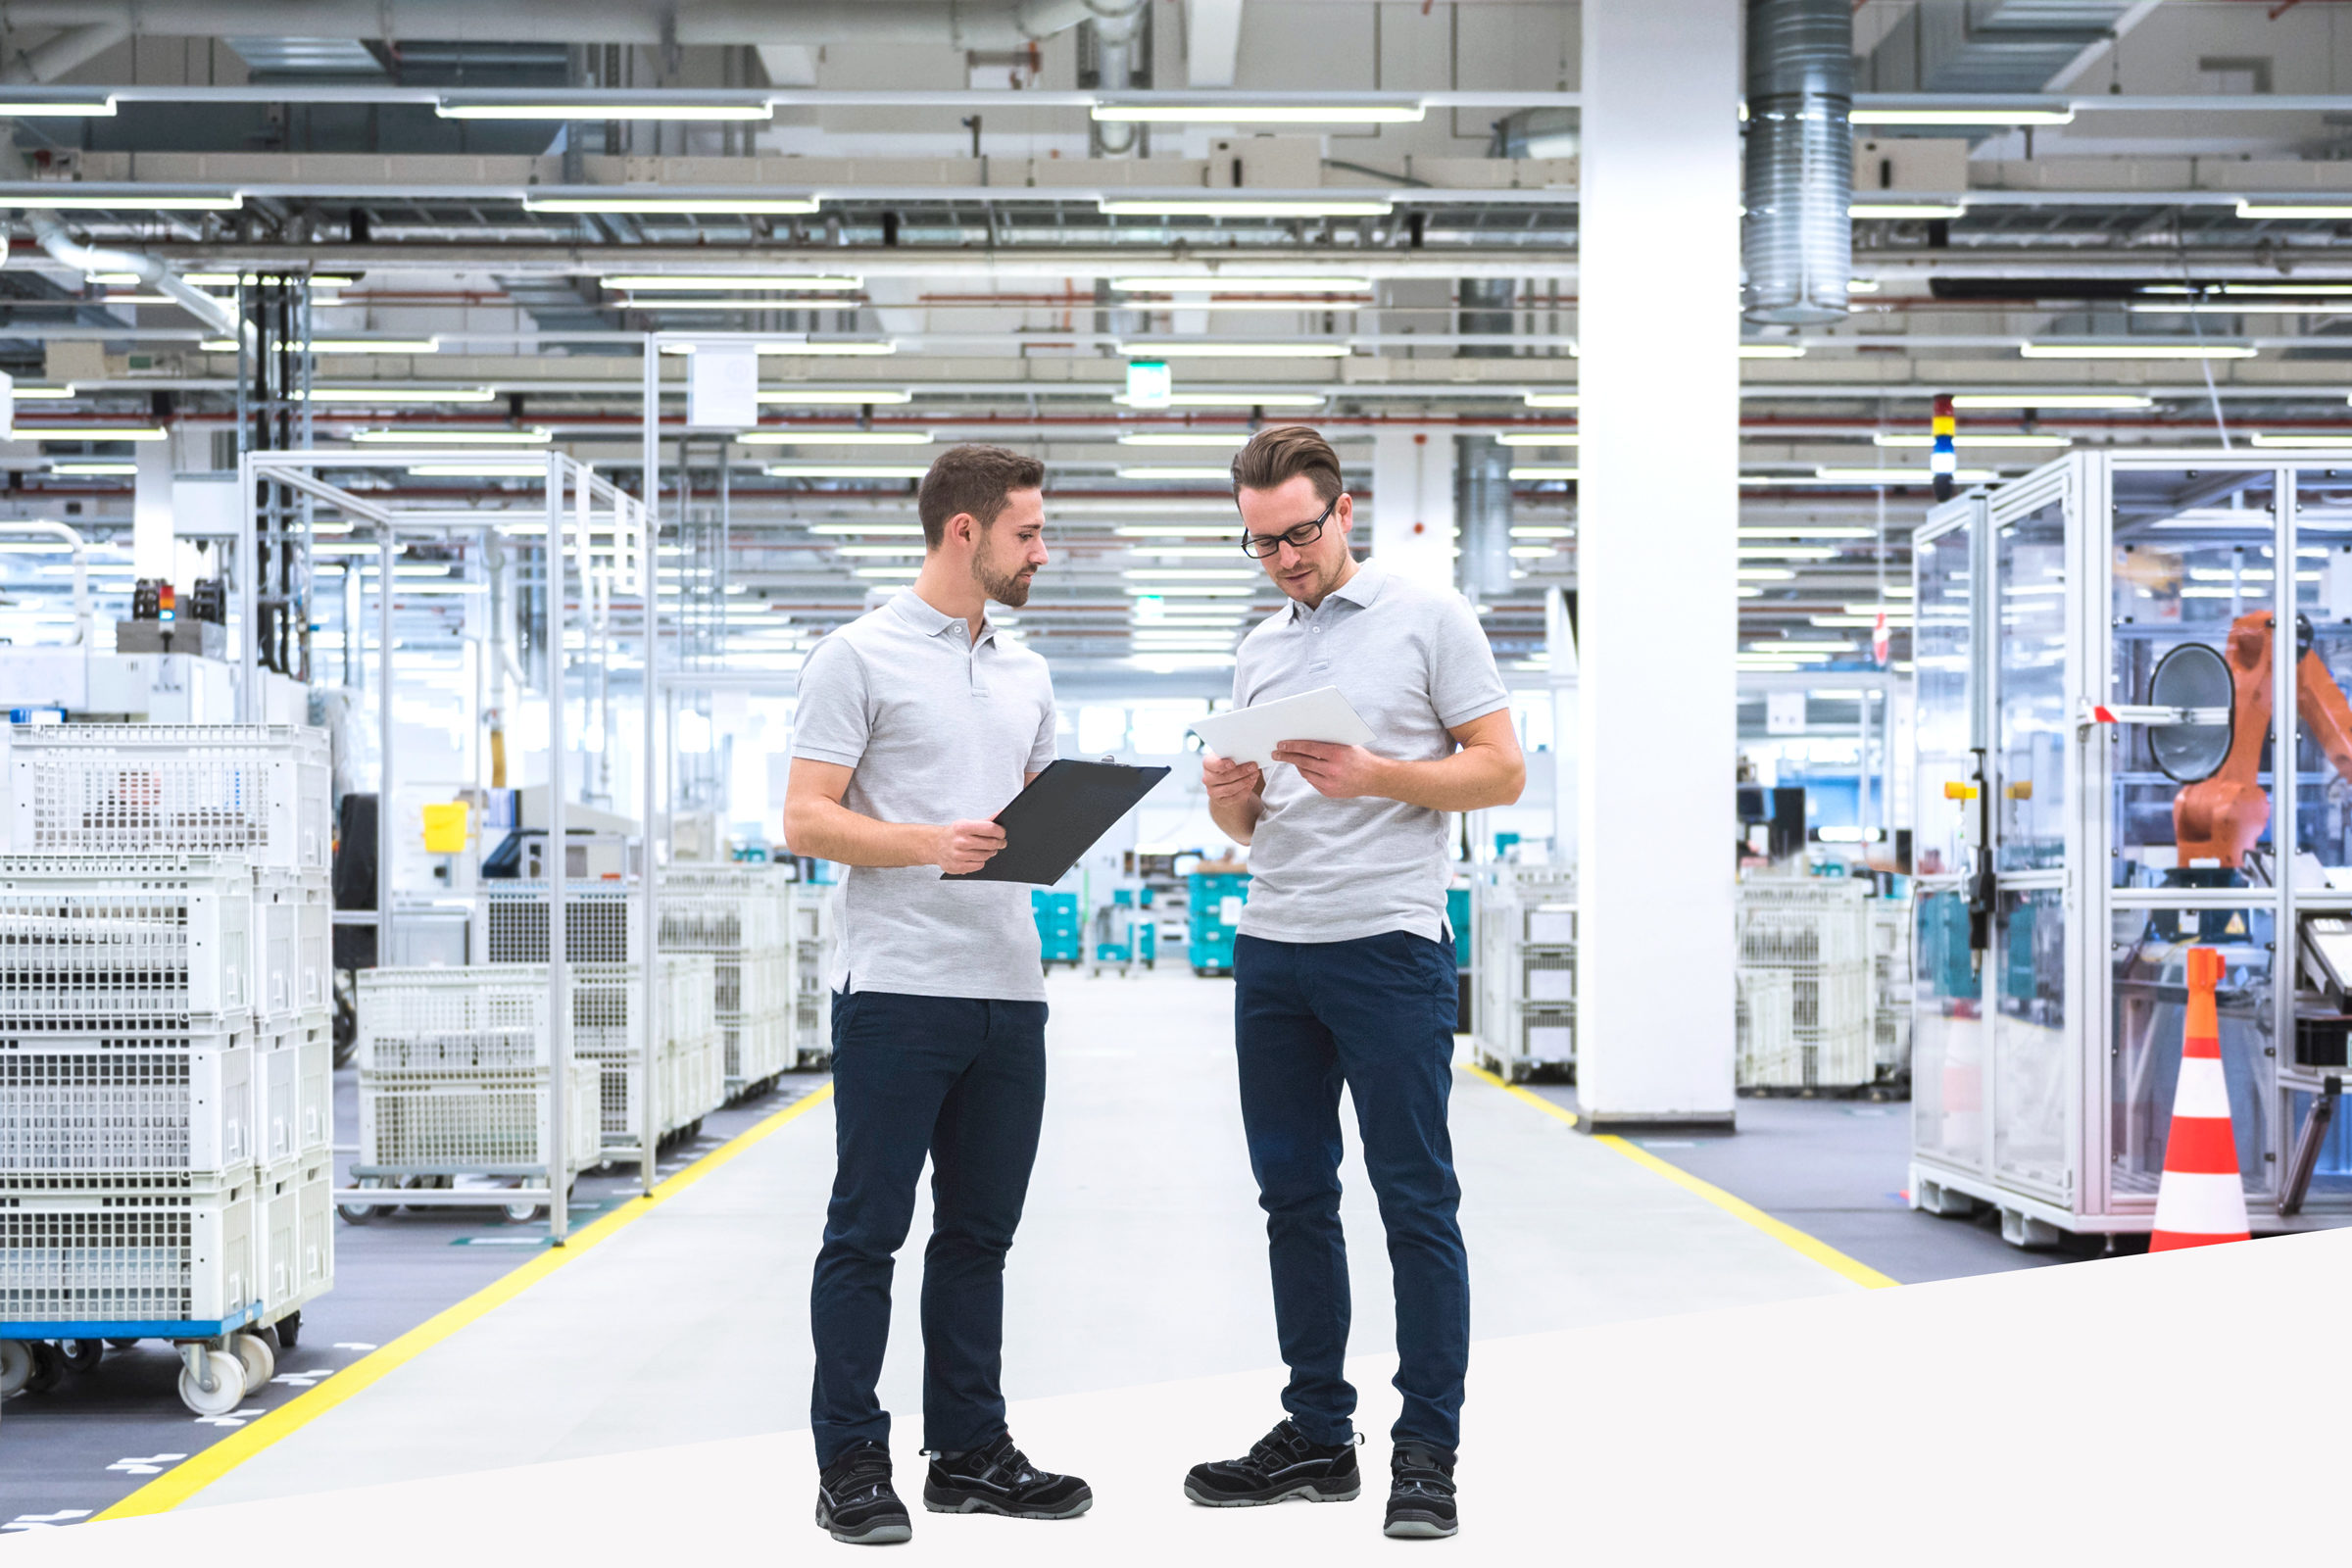 Two men talking in factory shop floor